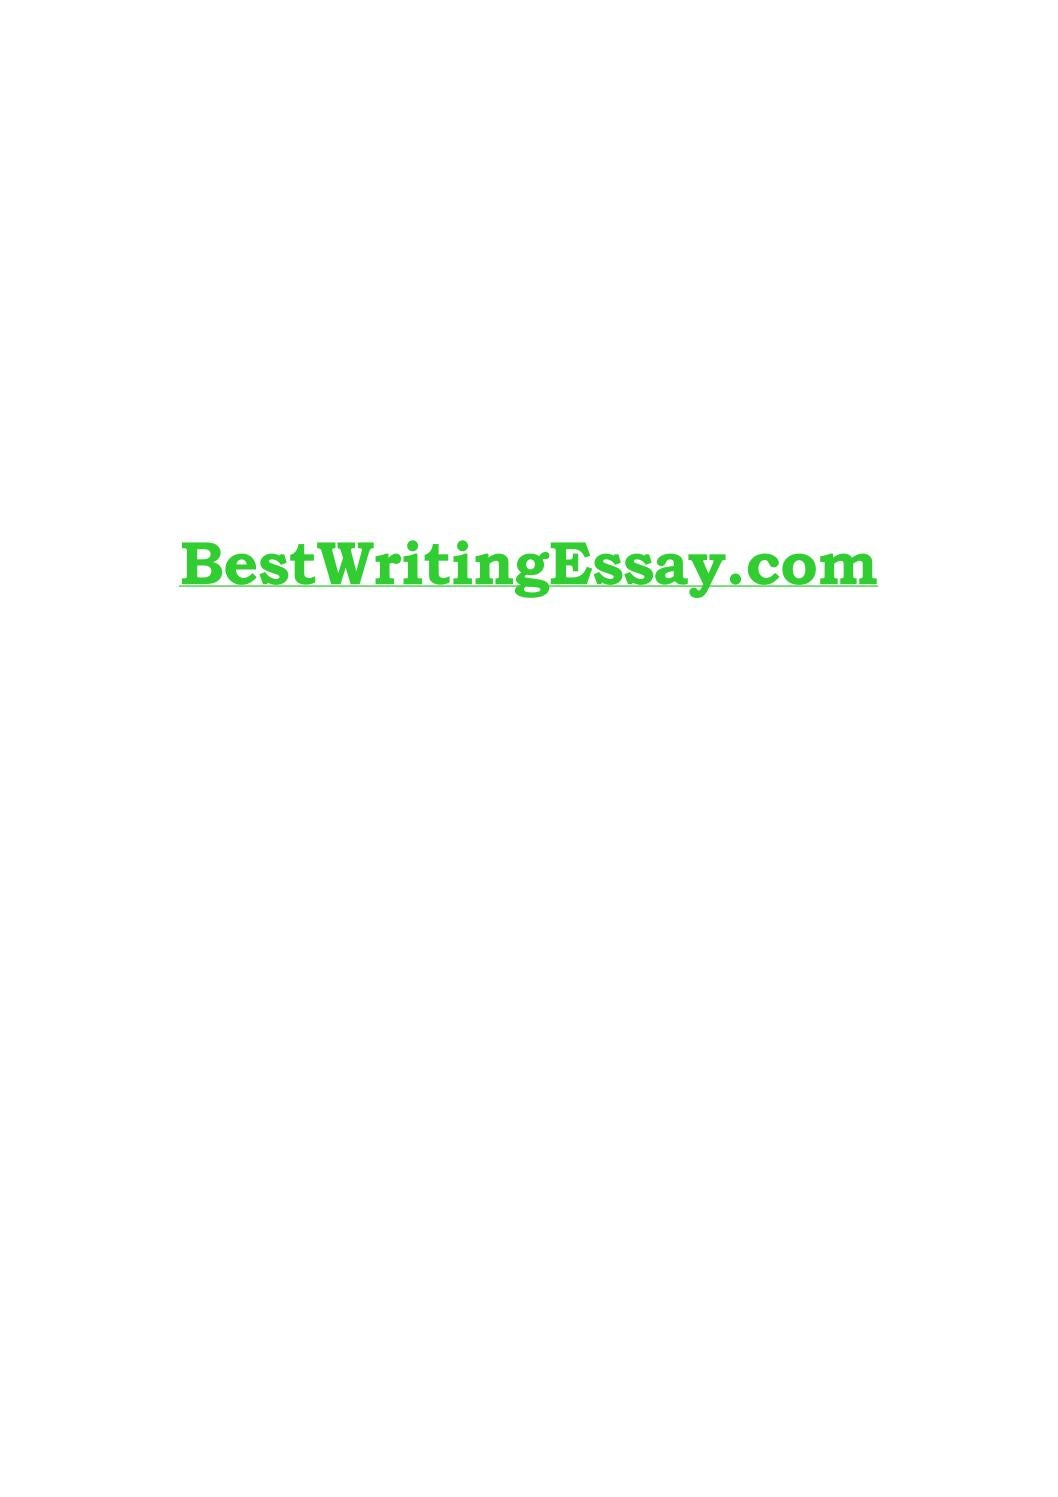 How To Write A Good Essay For High School  High School Argumentative Essay Topics also Science Essay Topics Essay Writing Topics For High School Students By Codysqpeq  Fifth Business Essay